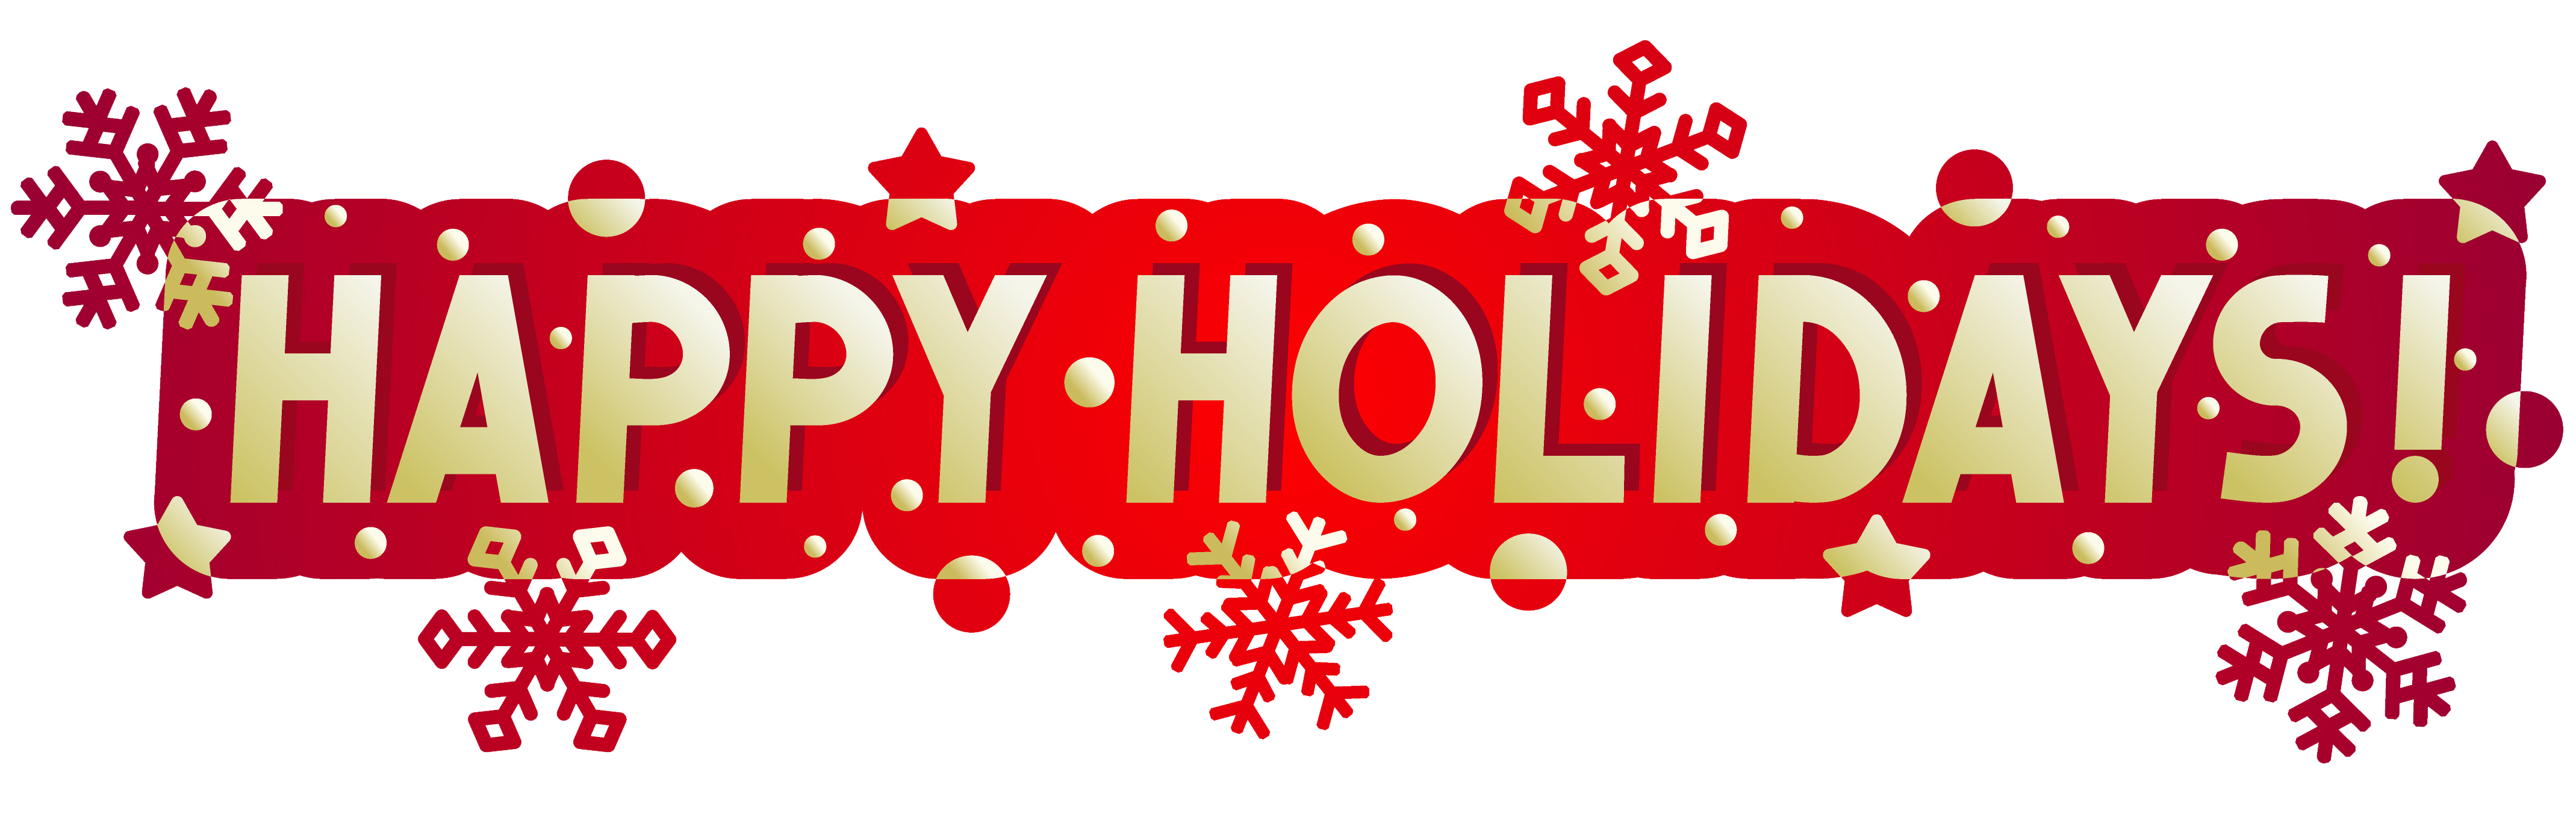 Holiday banner png. Happy holidays clip art